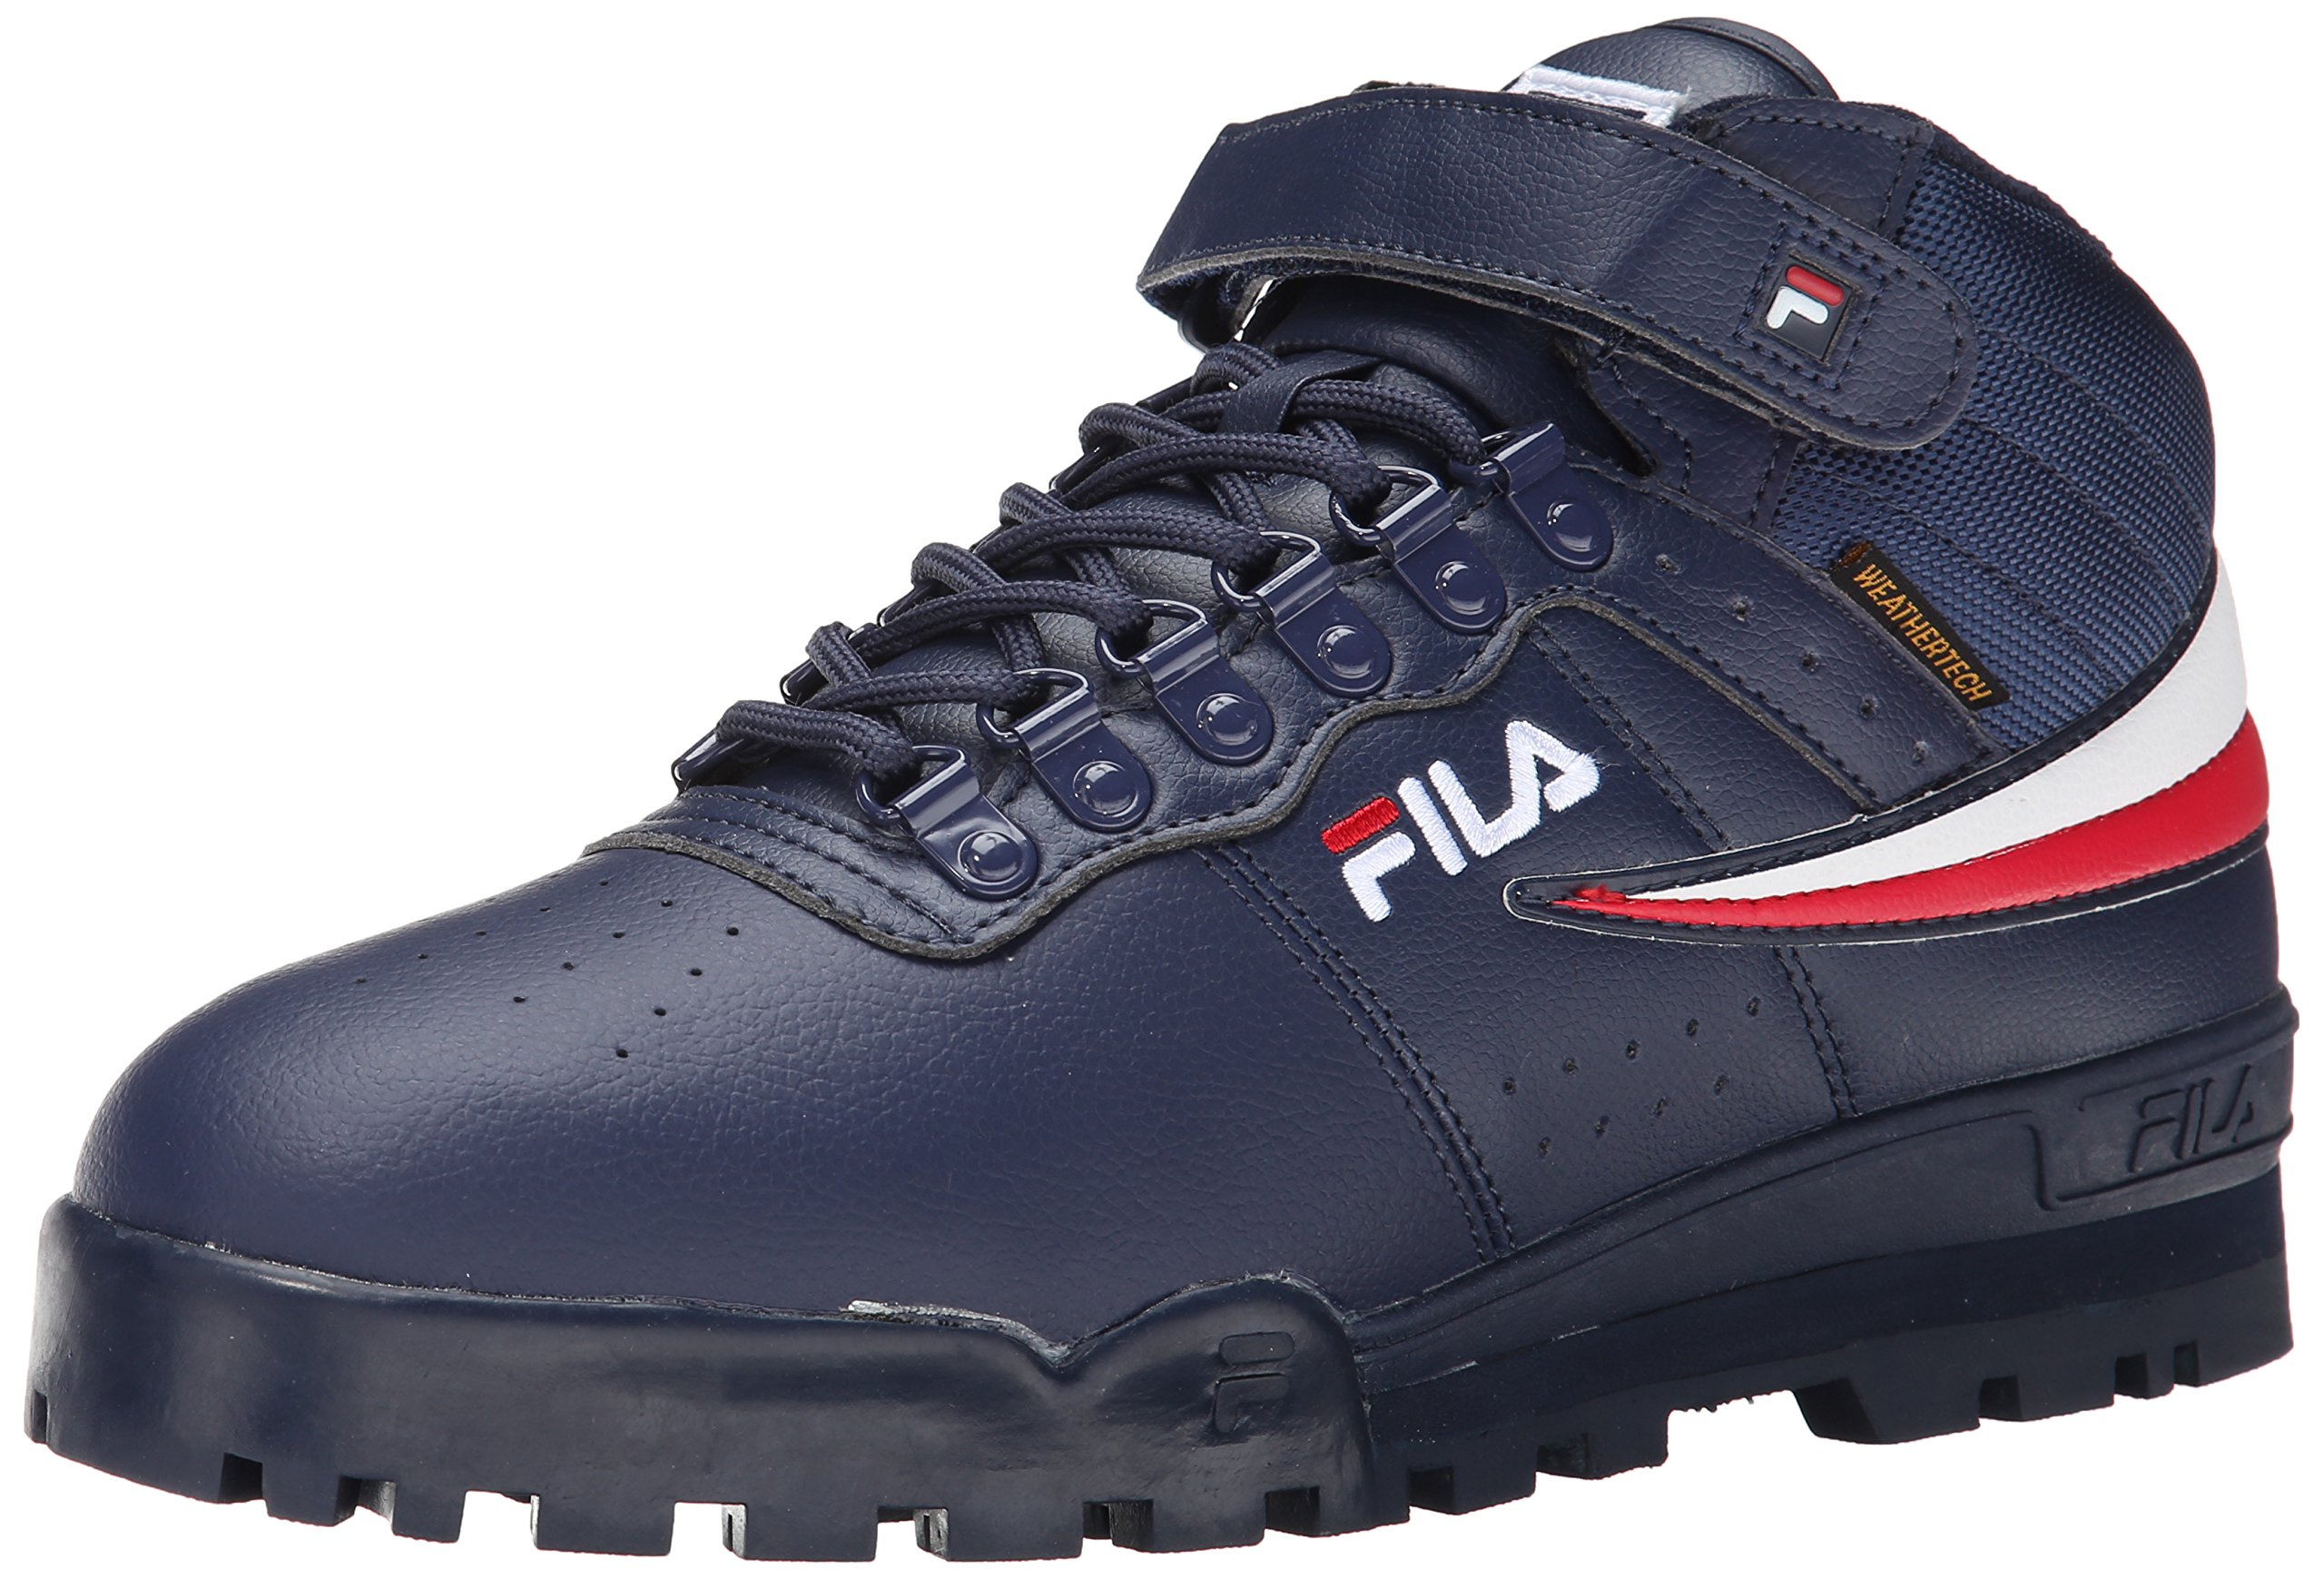 Fila Men's f-13 Weather tech-m, Navy/White Red, 12 M US